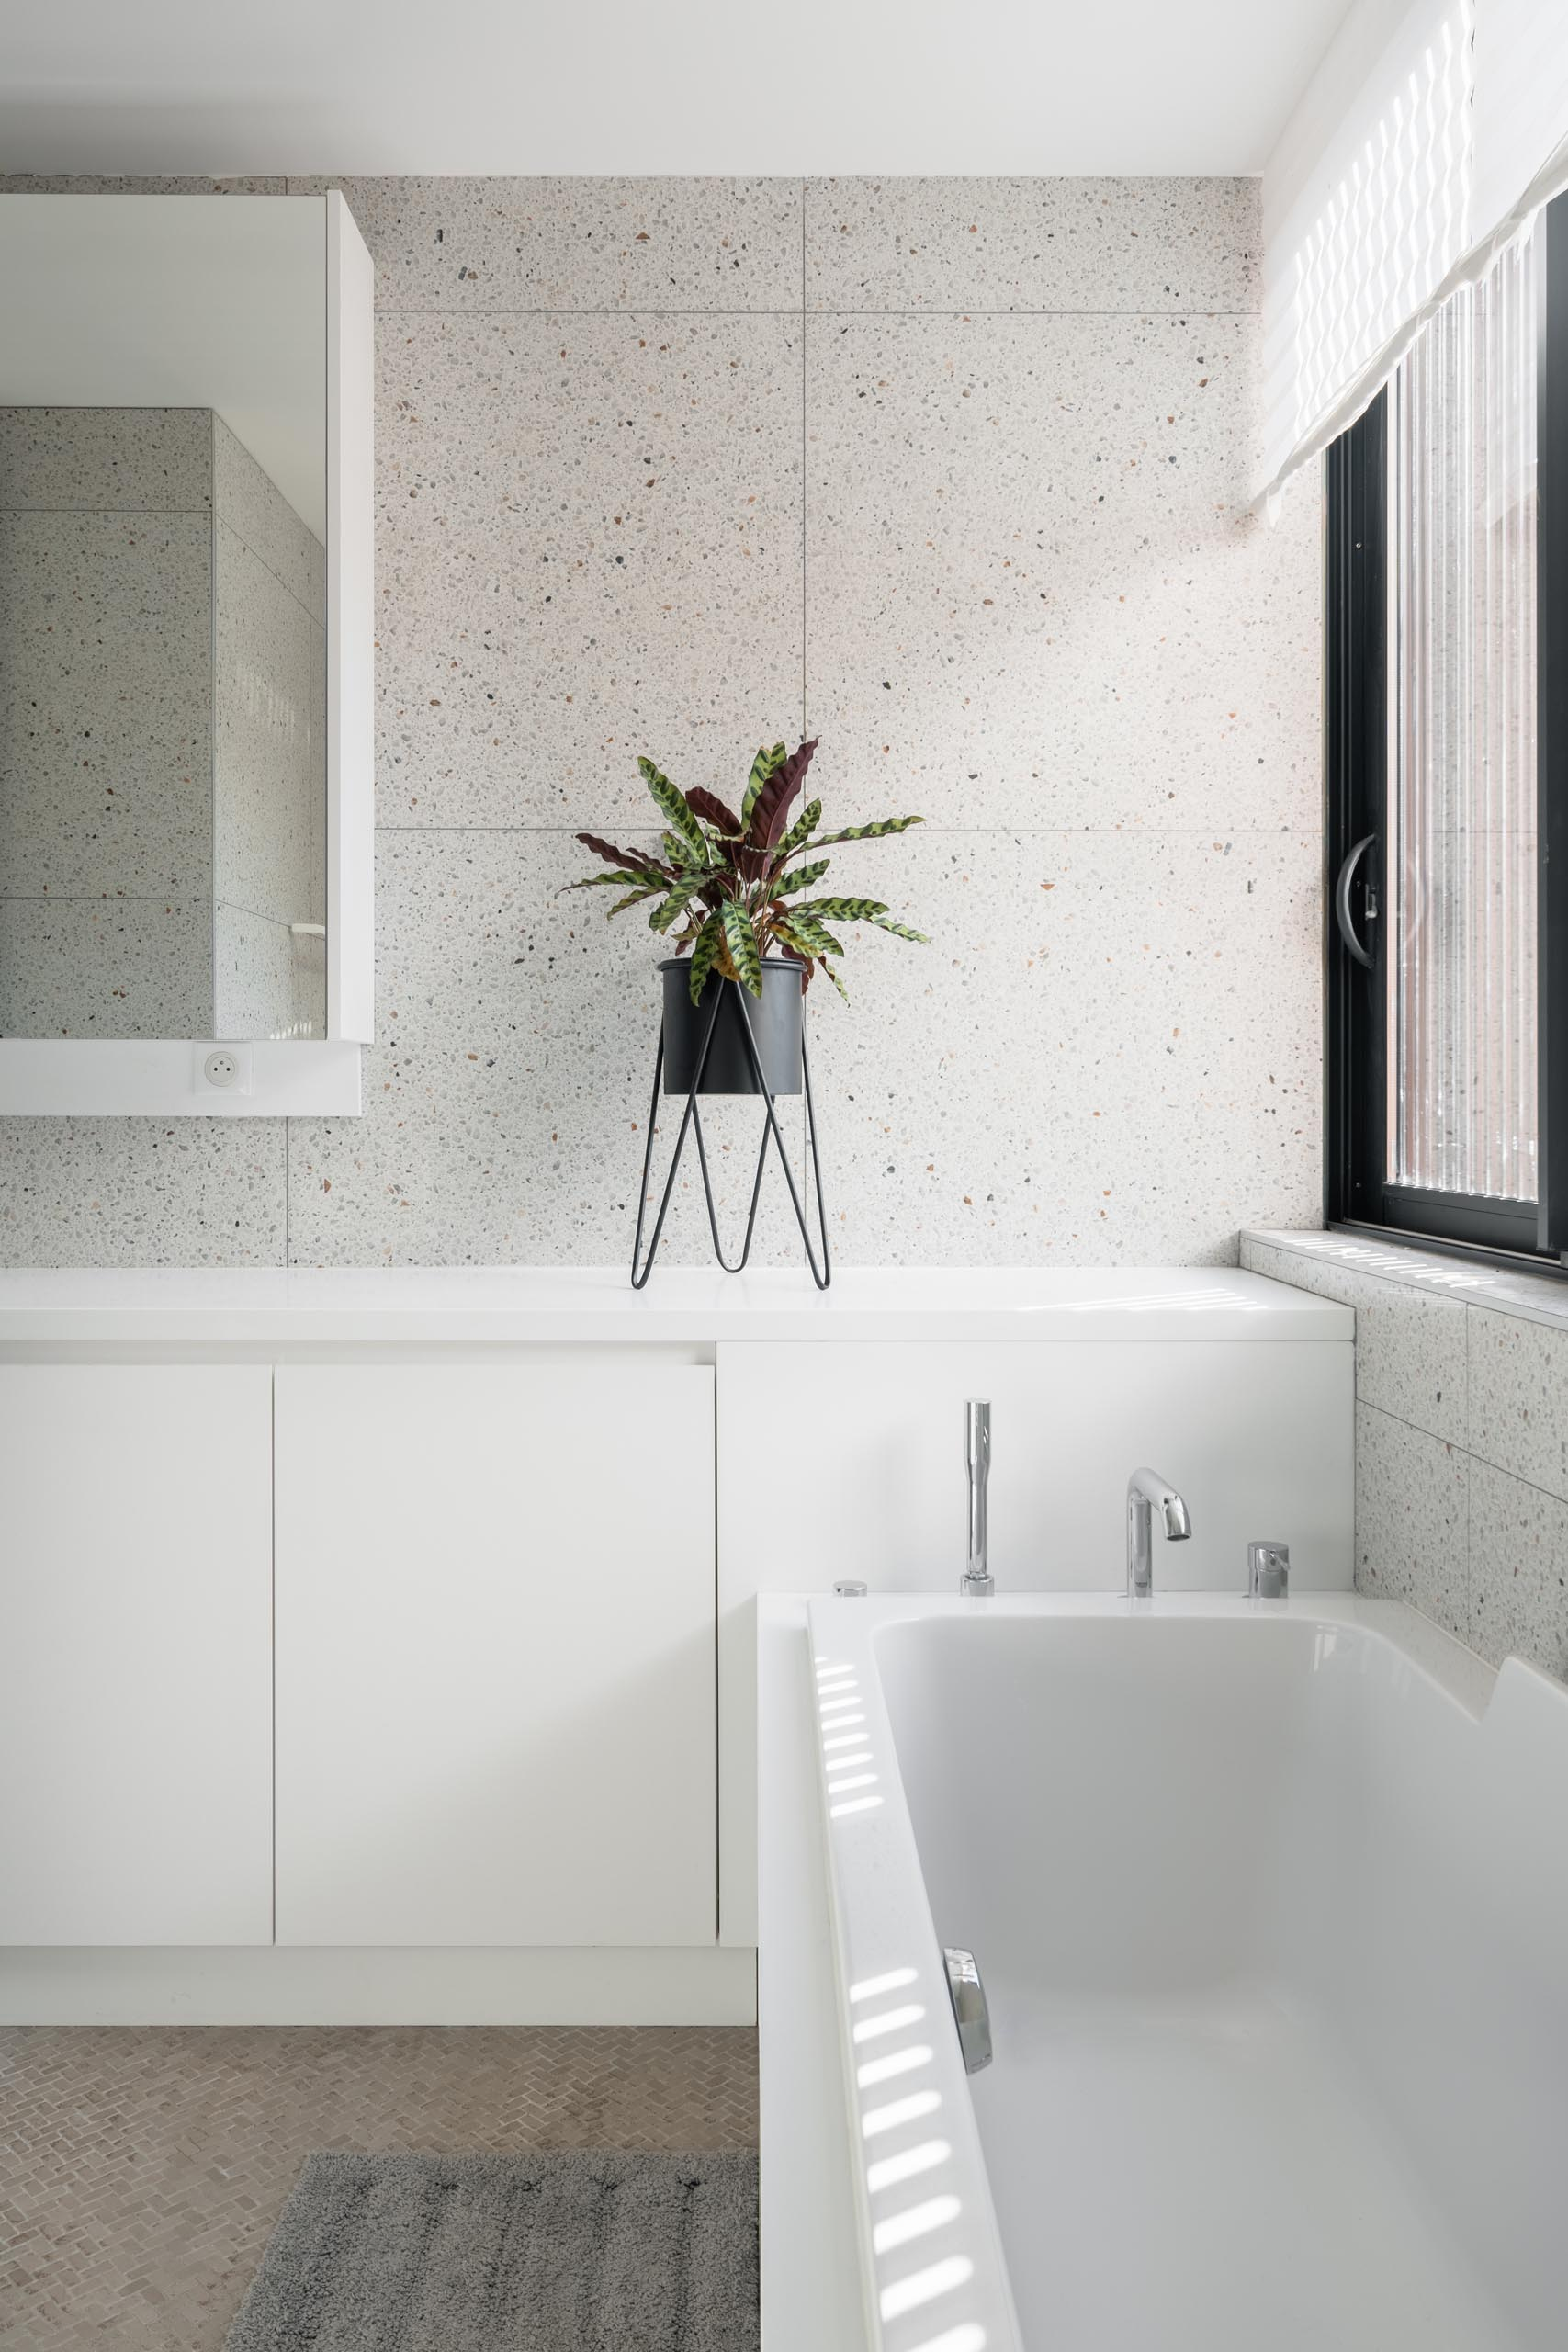 A modern bathroom with light colored walls, white cabinetry, a  large mirror, and built-in bathtub.